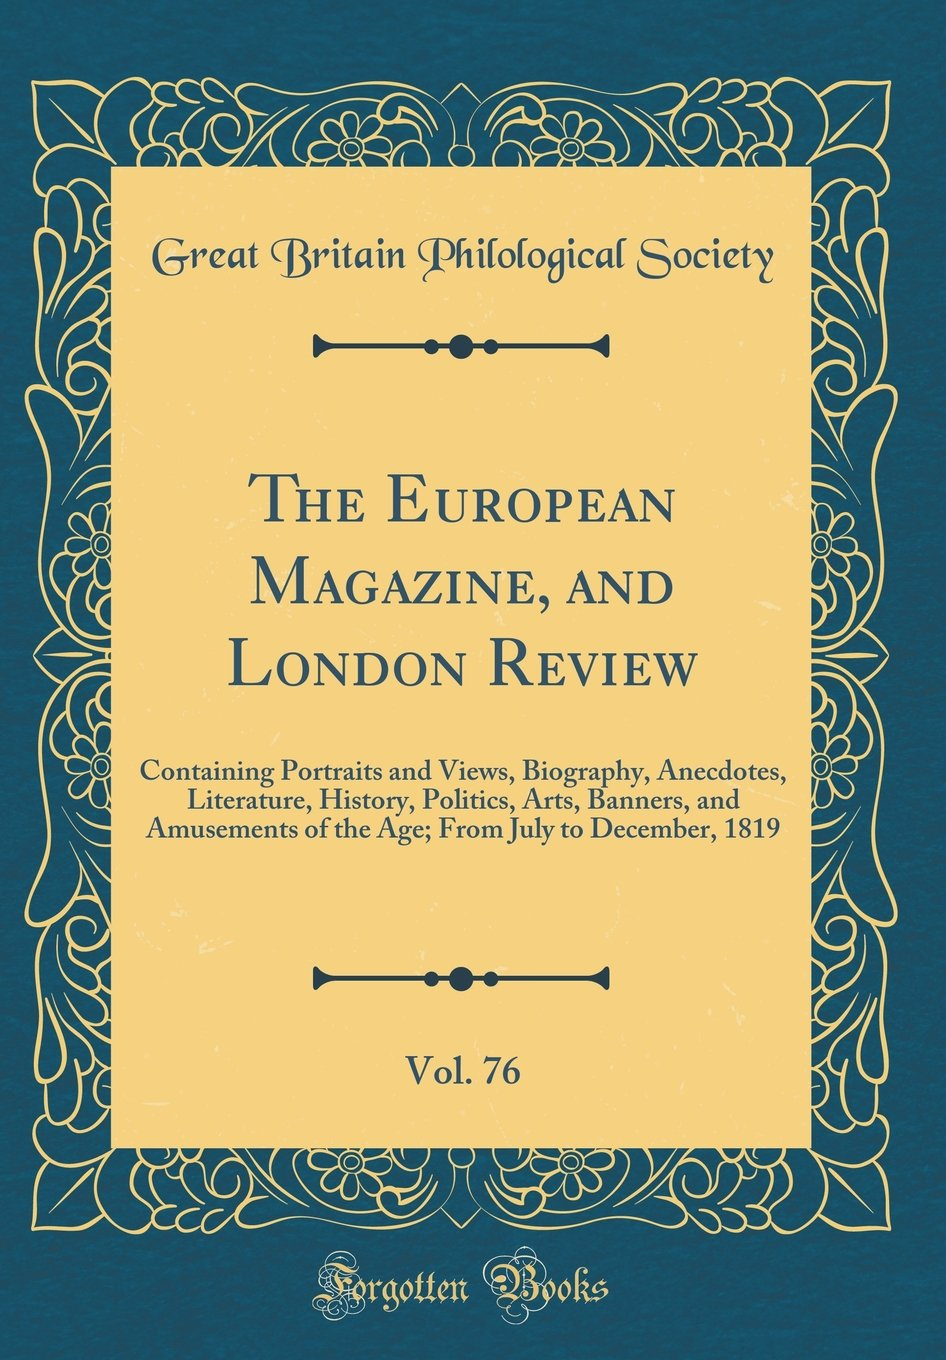 The European Magazine, and London Review, Vol. 76: Containing Portraits and Views, Biography, Anecdotes, Literature, History, Politics, Arts, Banners, ... From July to December, 1819 (Classic Reprint) ebook